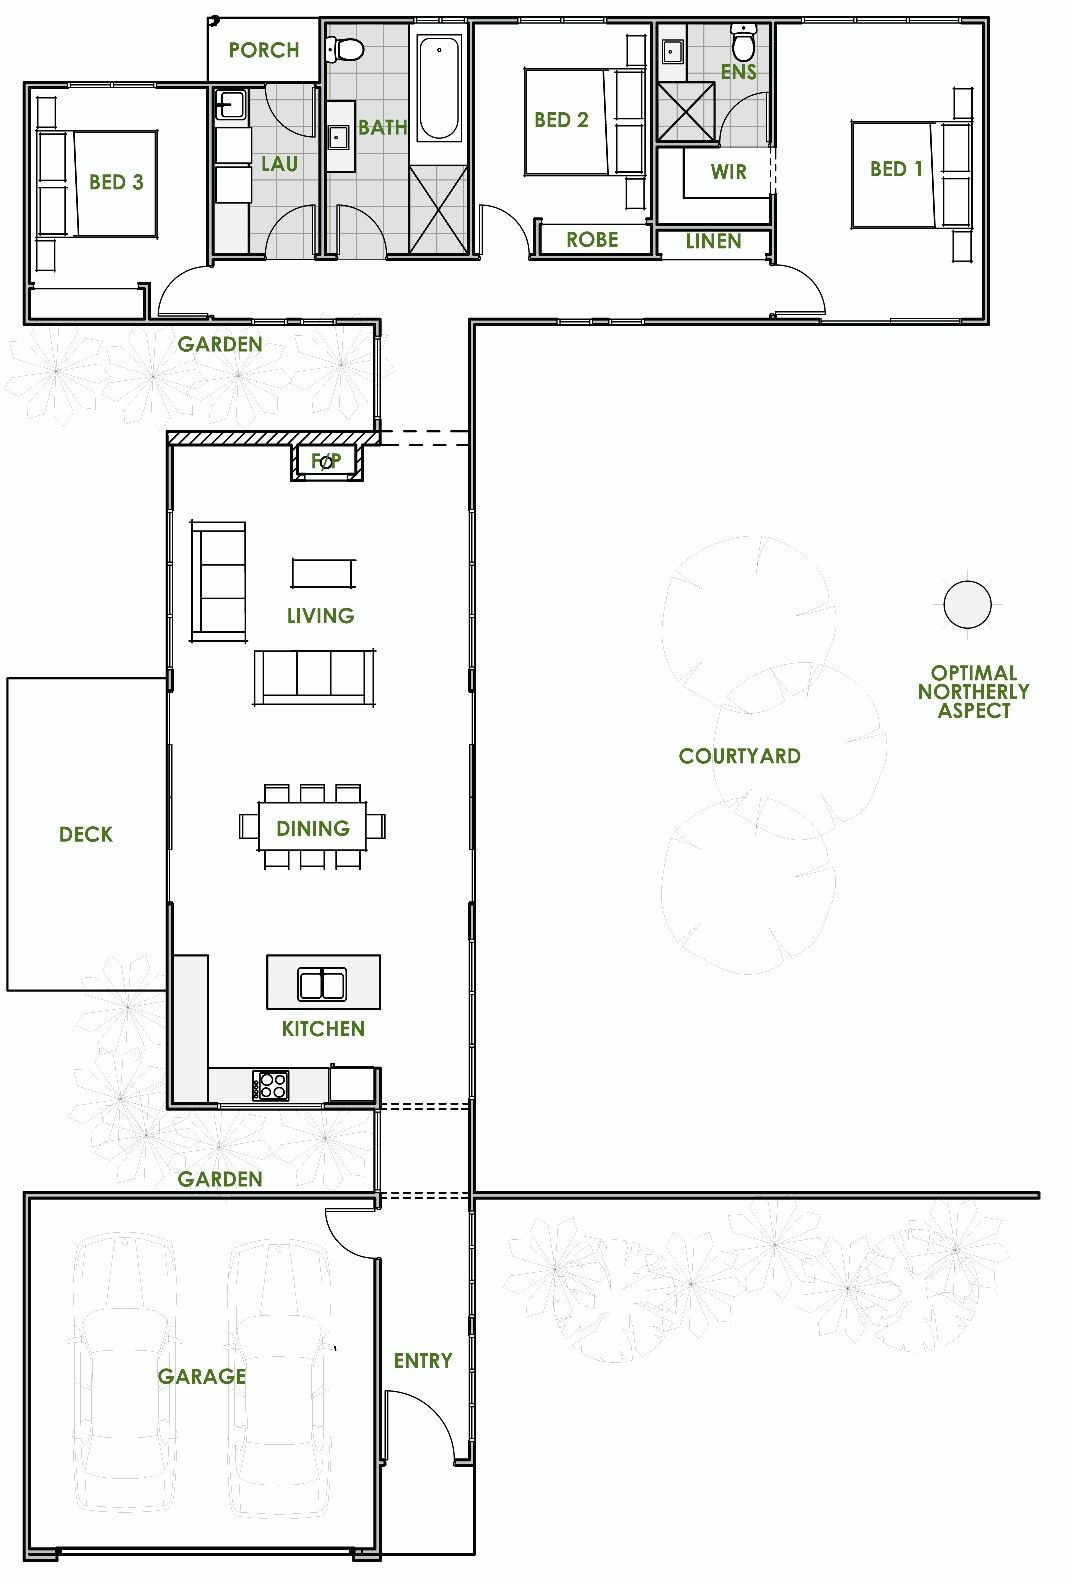 small resolution of extra bedroom between b2 and bathroom